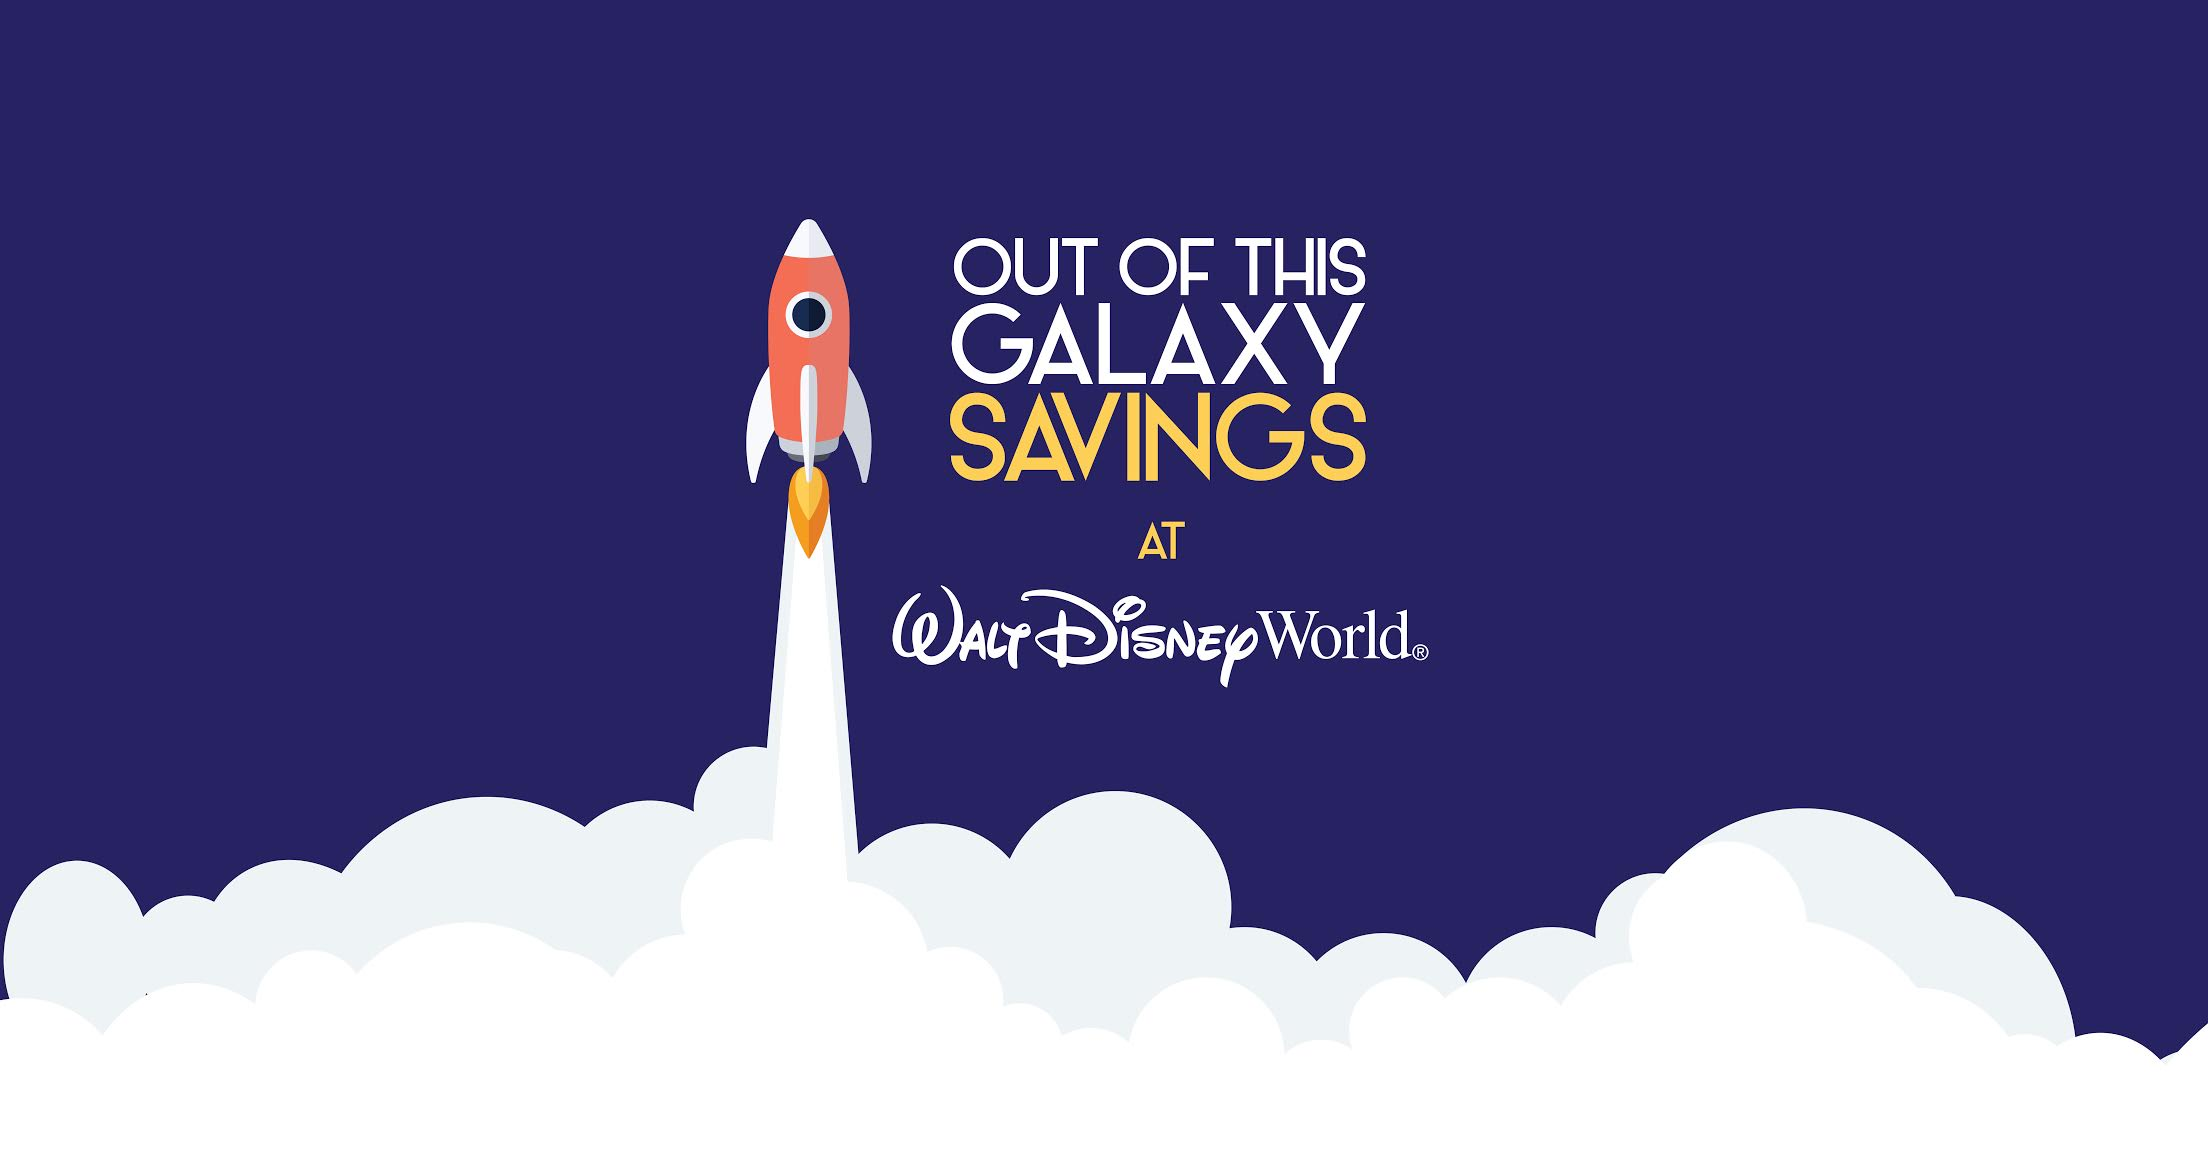 Out-of-this Galaxy Savings